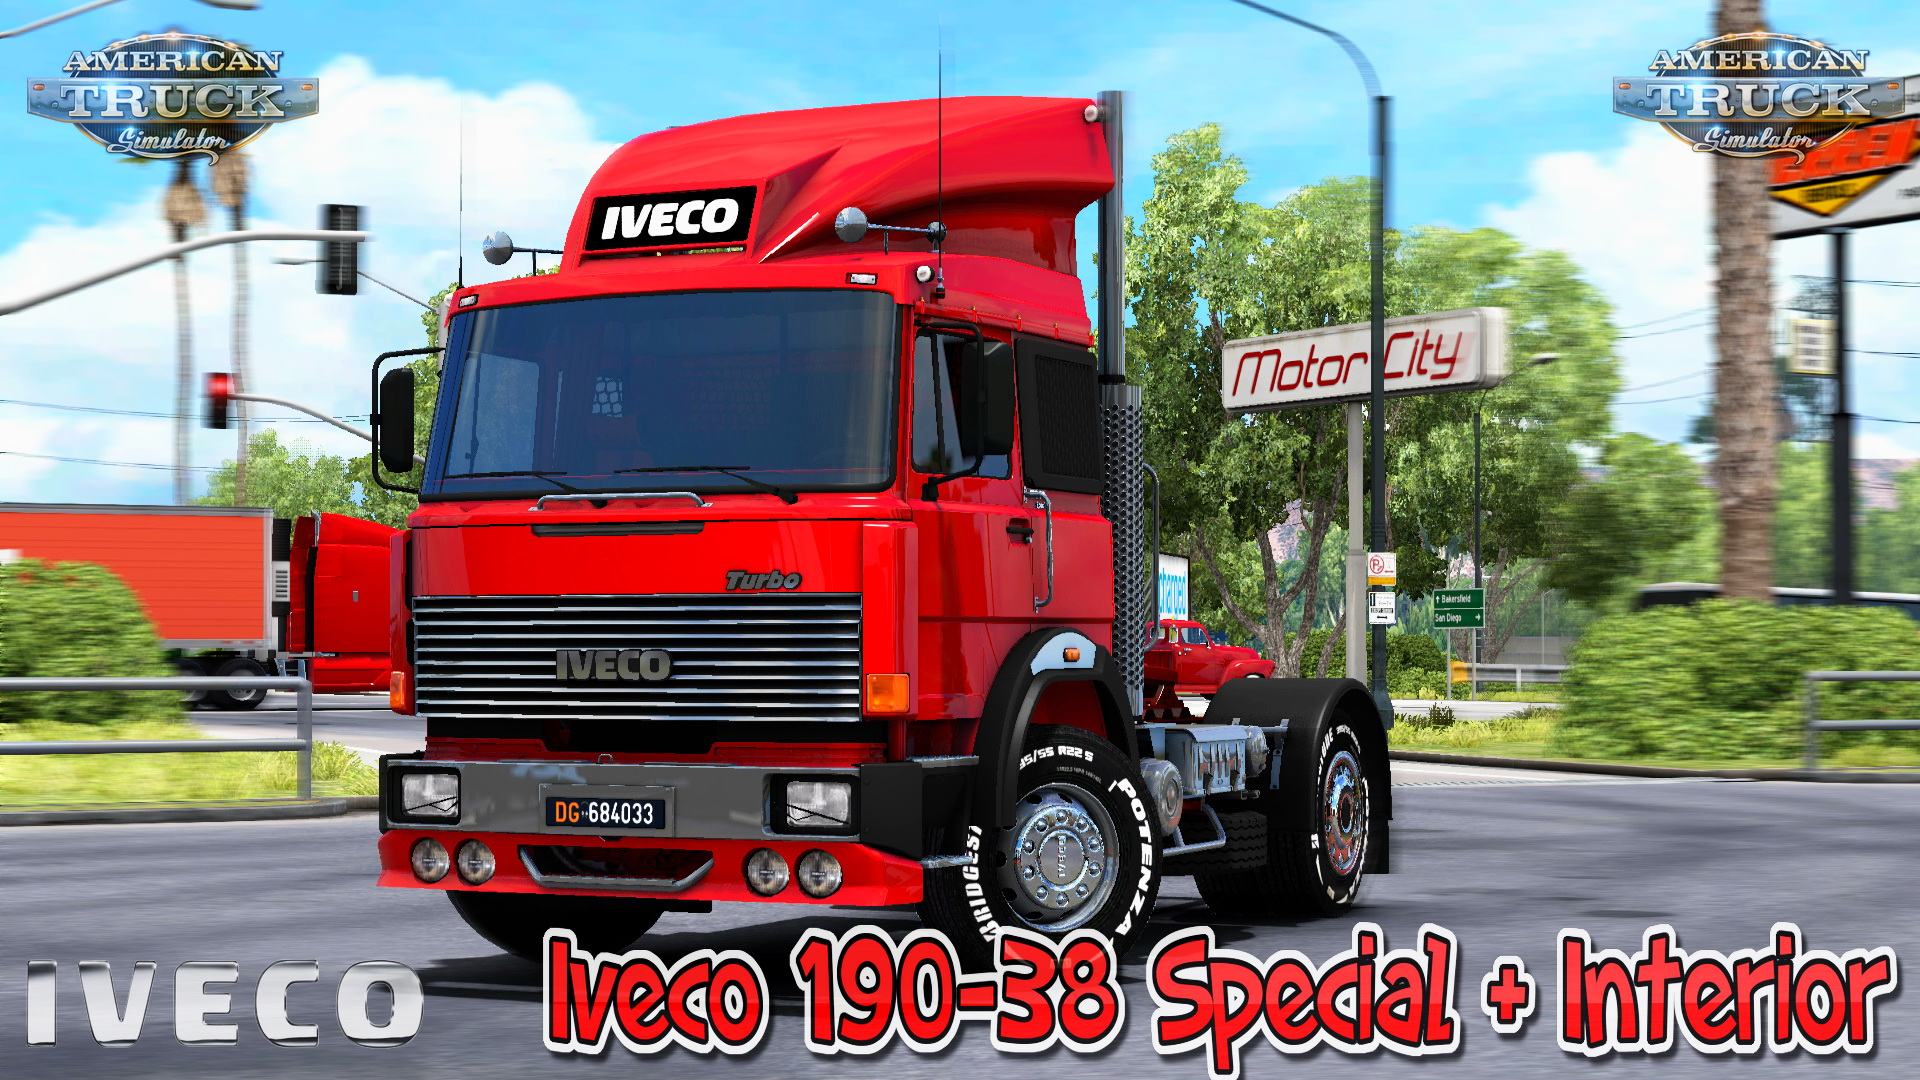 Iveco 190-38 Special + Interior v1.0 (v1.35.x) for ATS